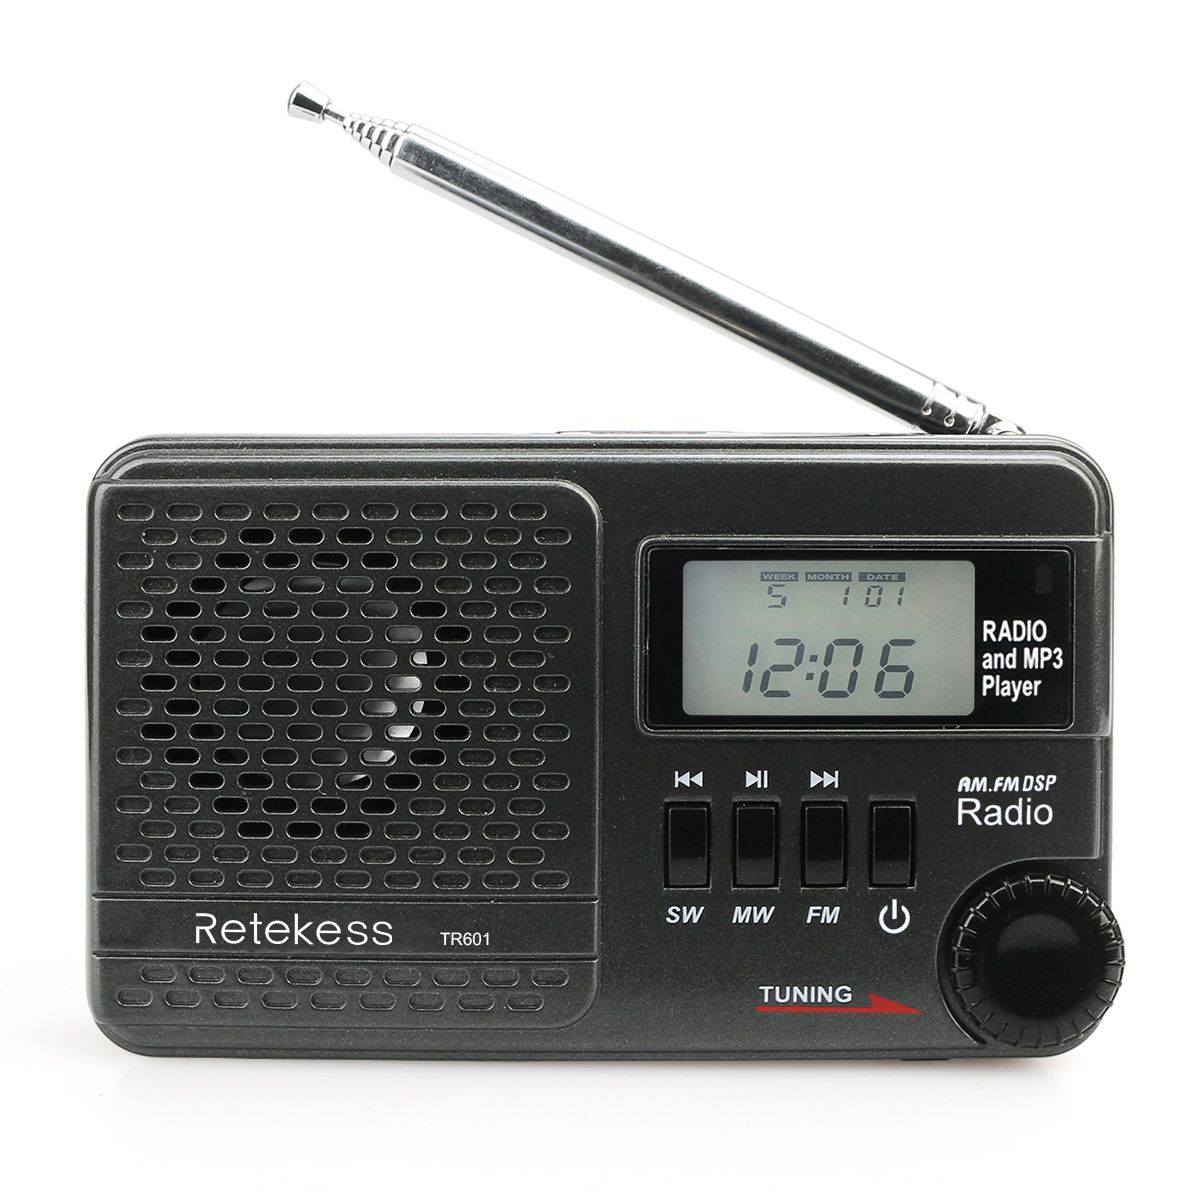 Retekess TR601 Radio FM AM SW MP3 Player TF Card Alarm Time Knob Digital Display DSP Sleep Function For Family Camping Outdoor